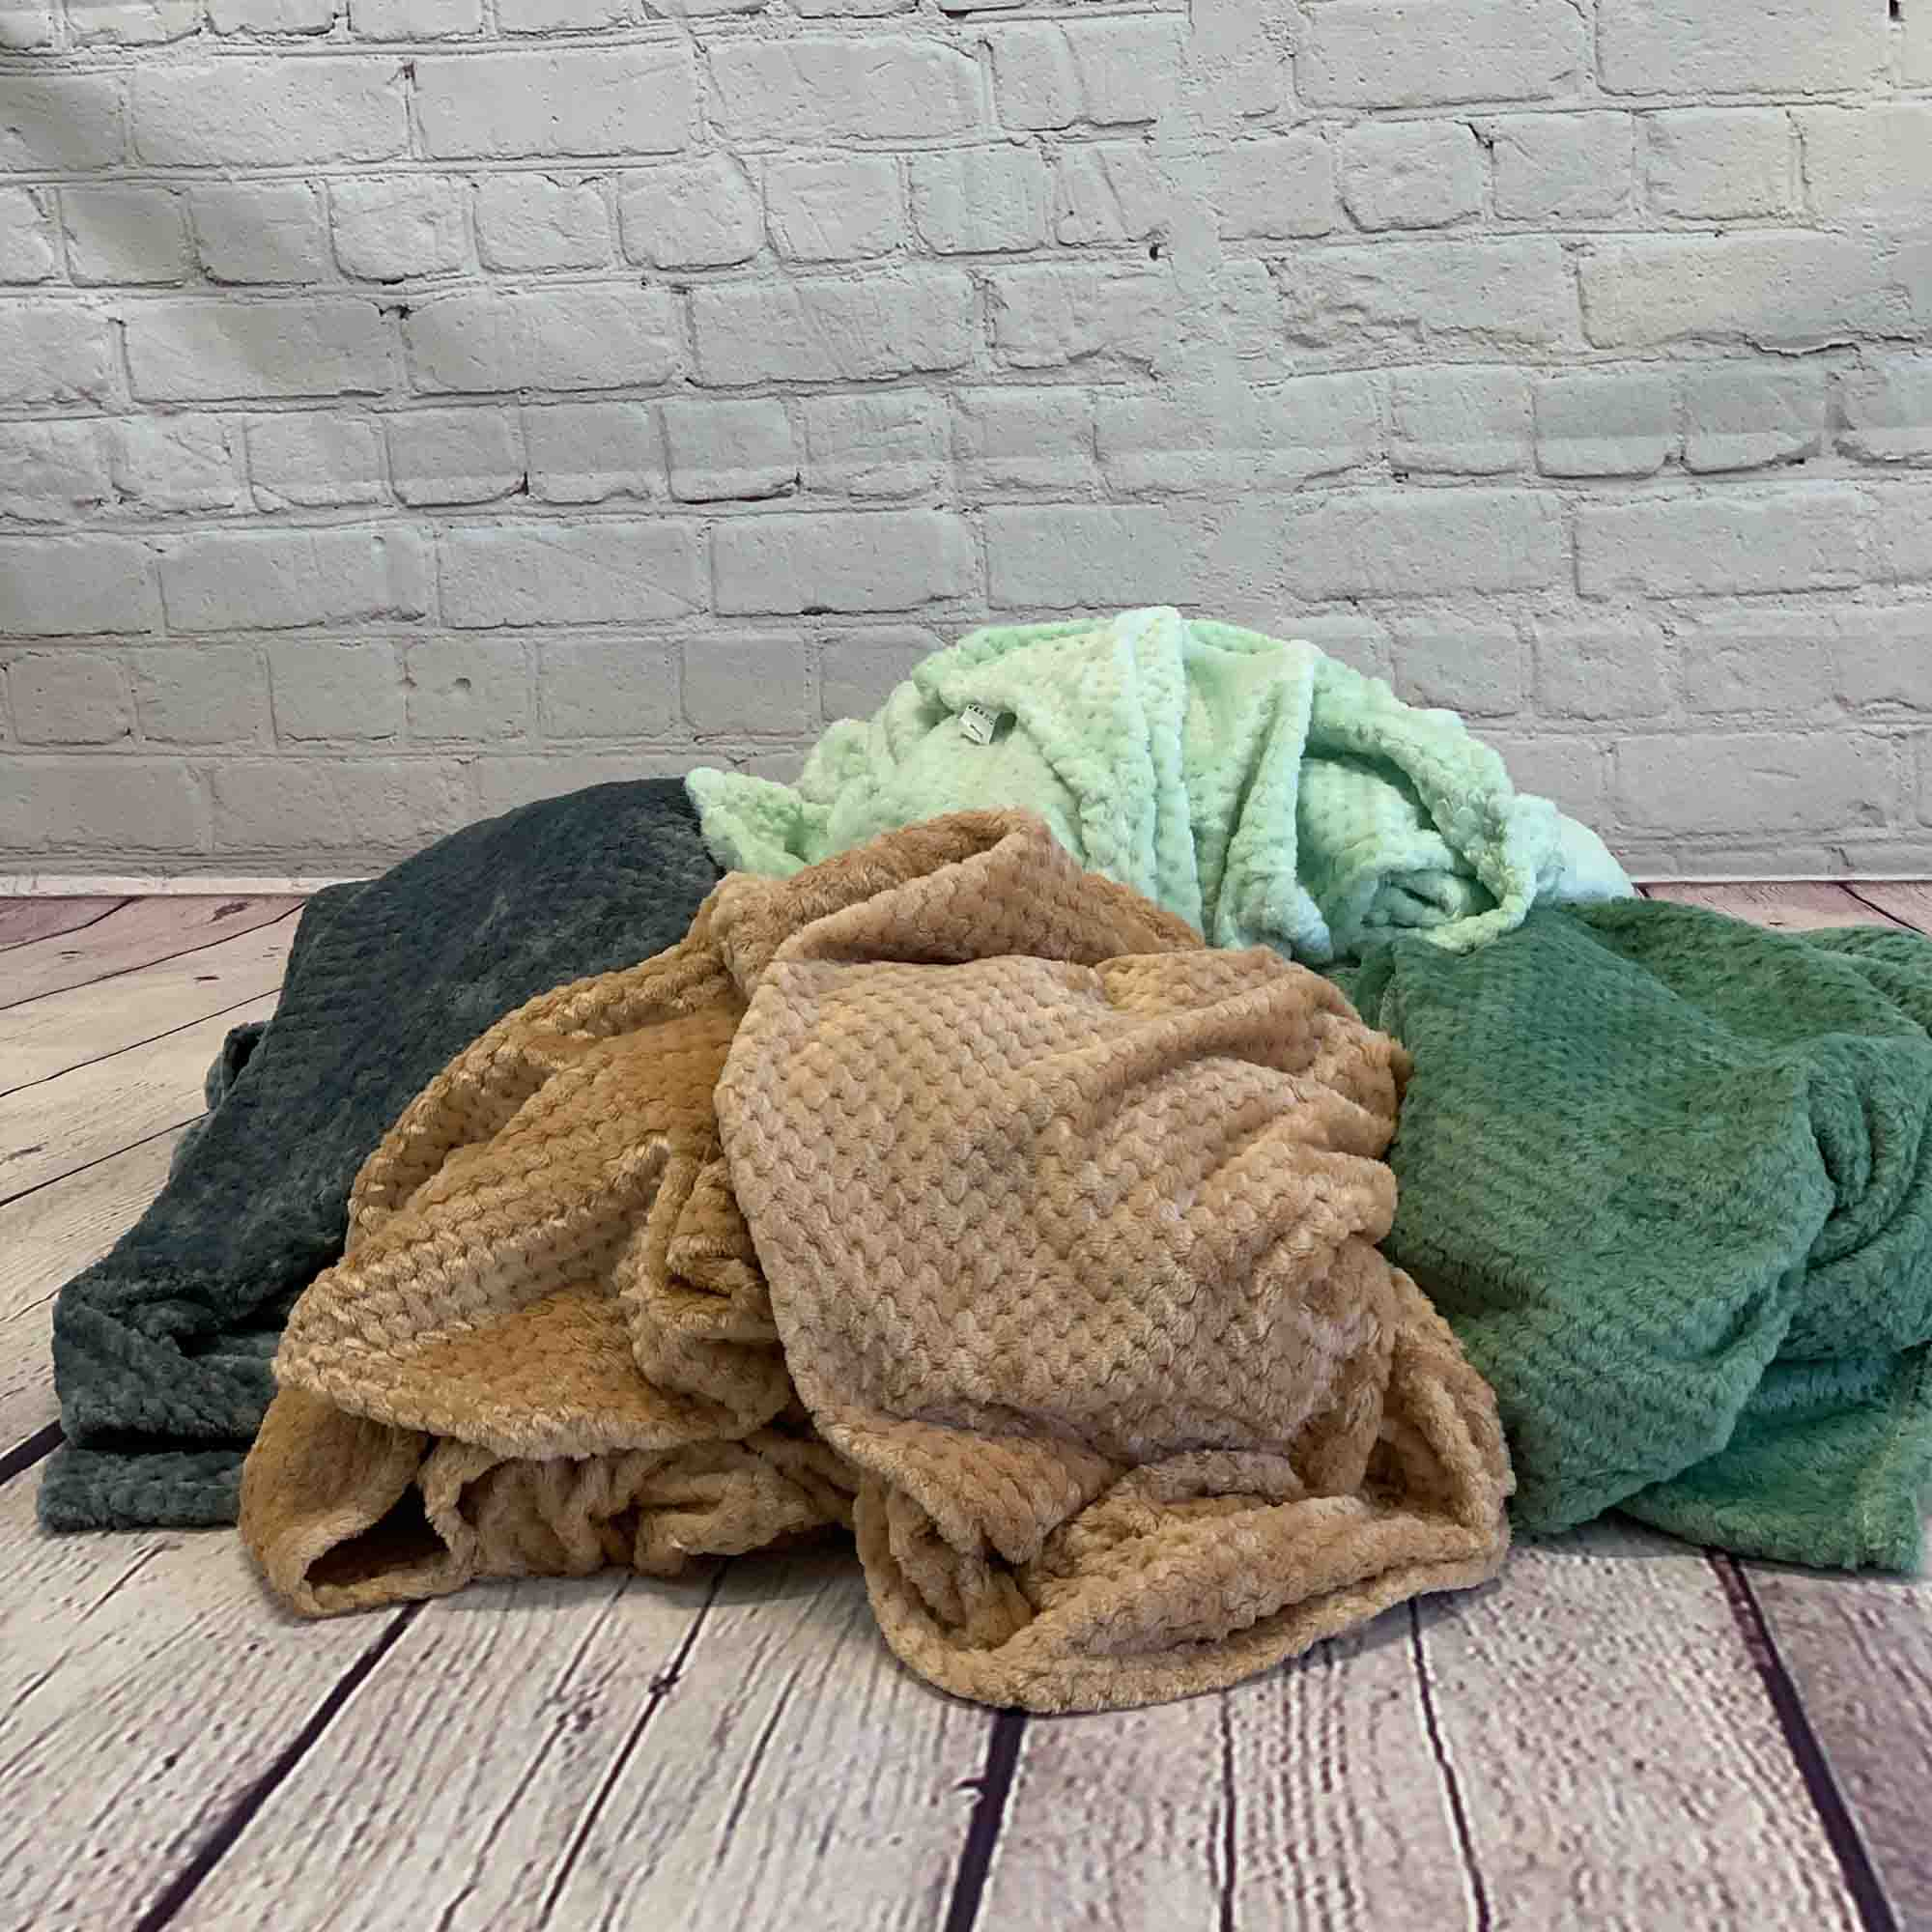 Image of a group of Microfiber fleece throw blanket on a wood plank floor